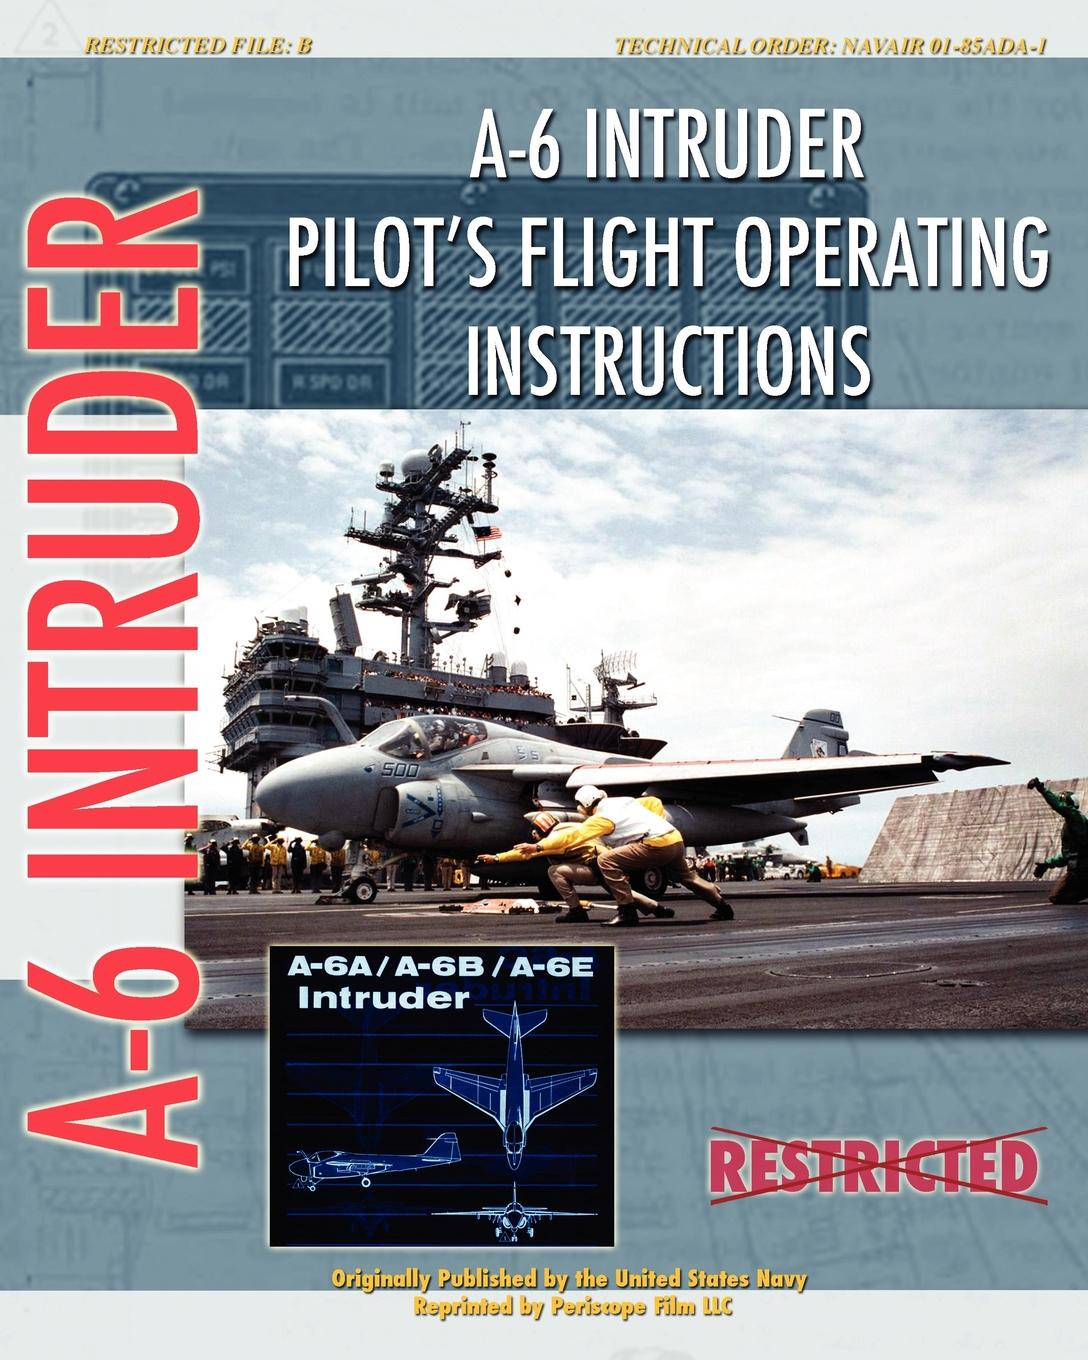 United States Navy A-6 Intruder Pilot.s Flight Operating Instructions